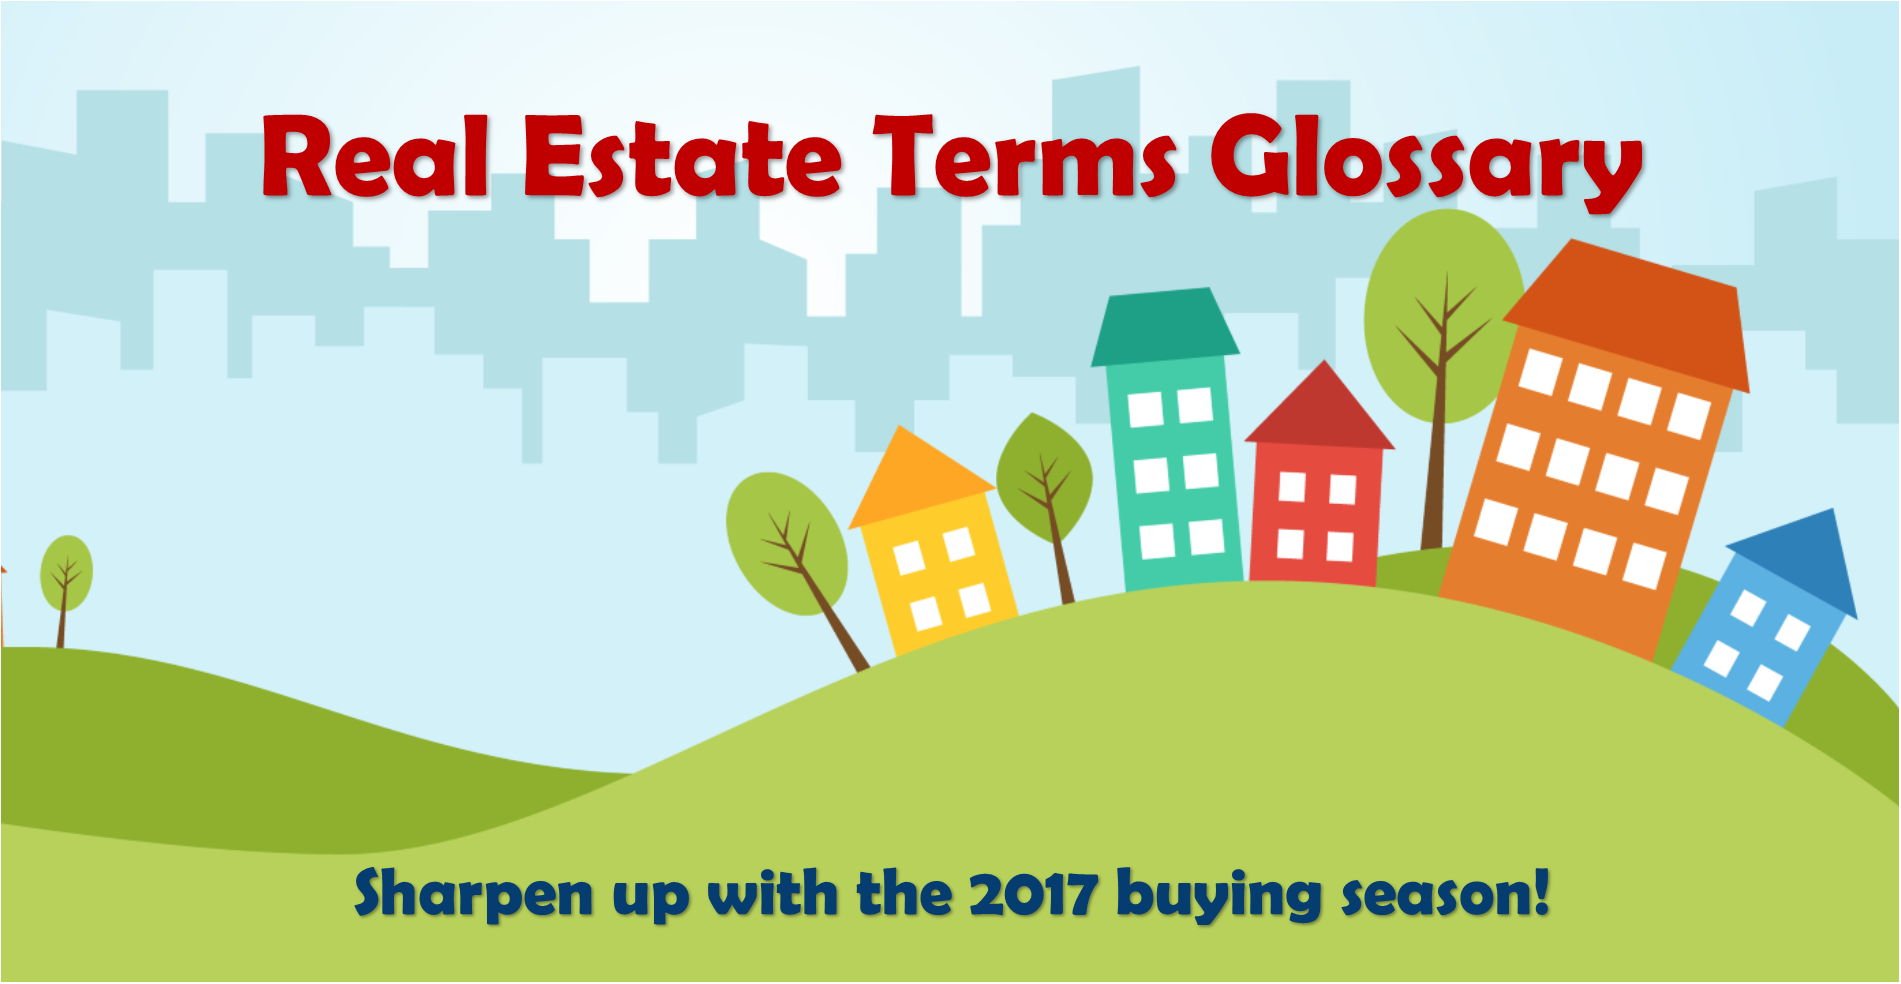 Typical Real Estate Terms